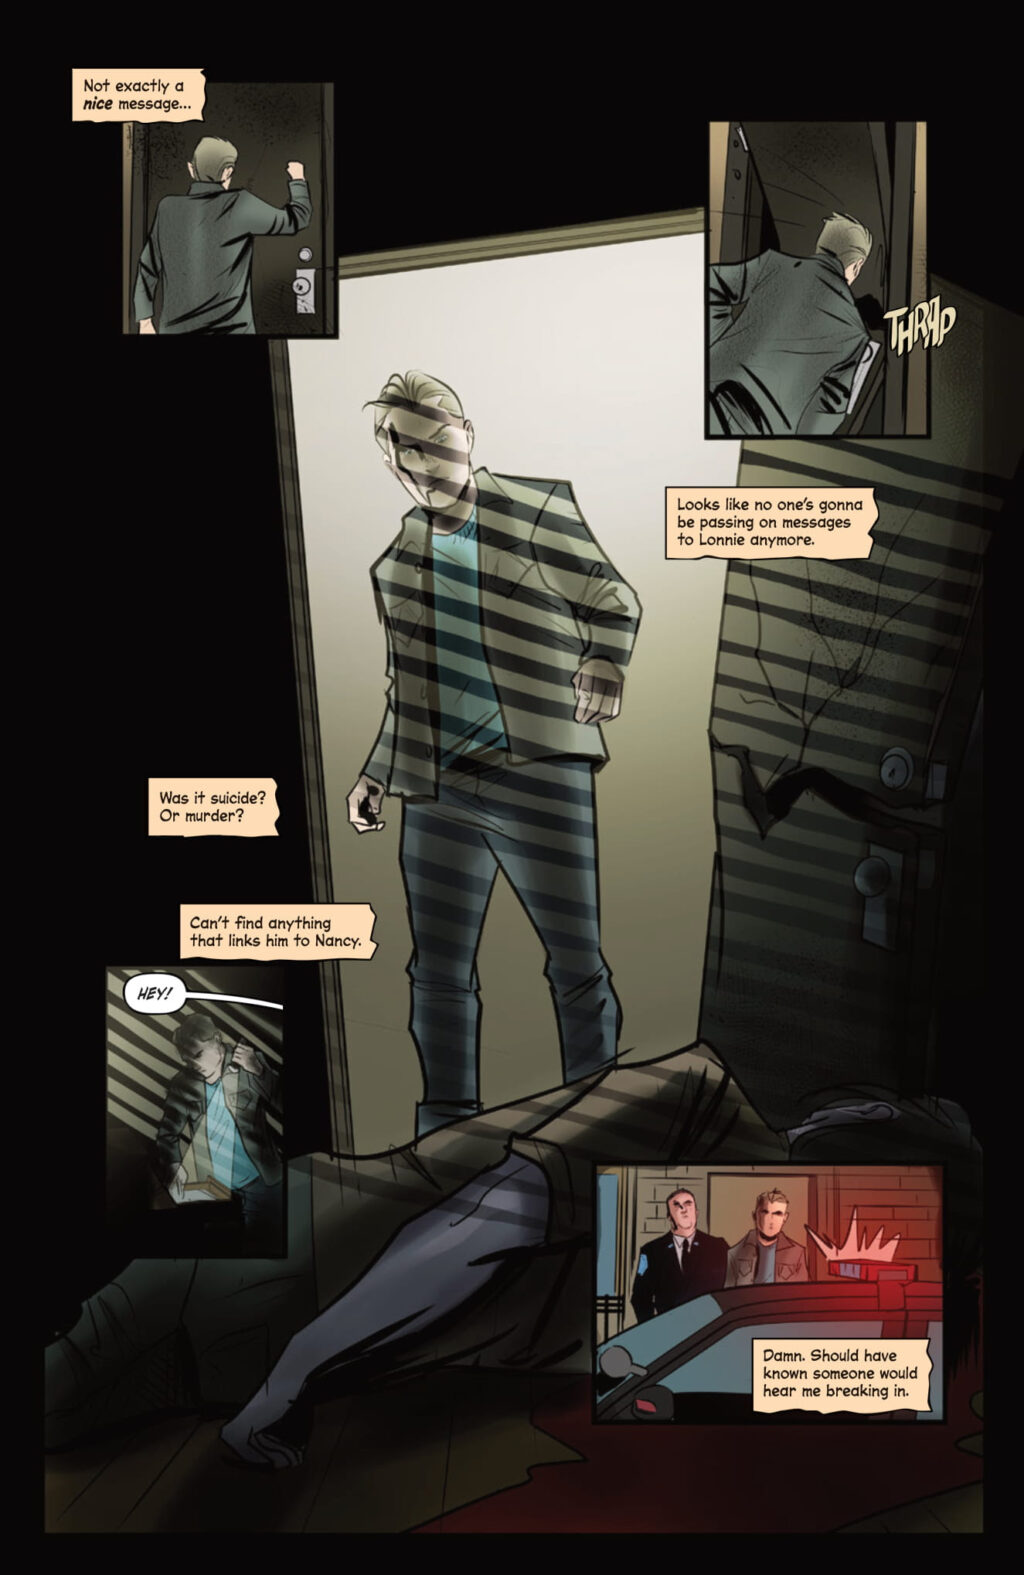 unnamed 8 1024x1575 - WHO KILLED NANCY DREW? Noir Comic Features Death of Iconic Teen Detective